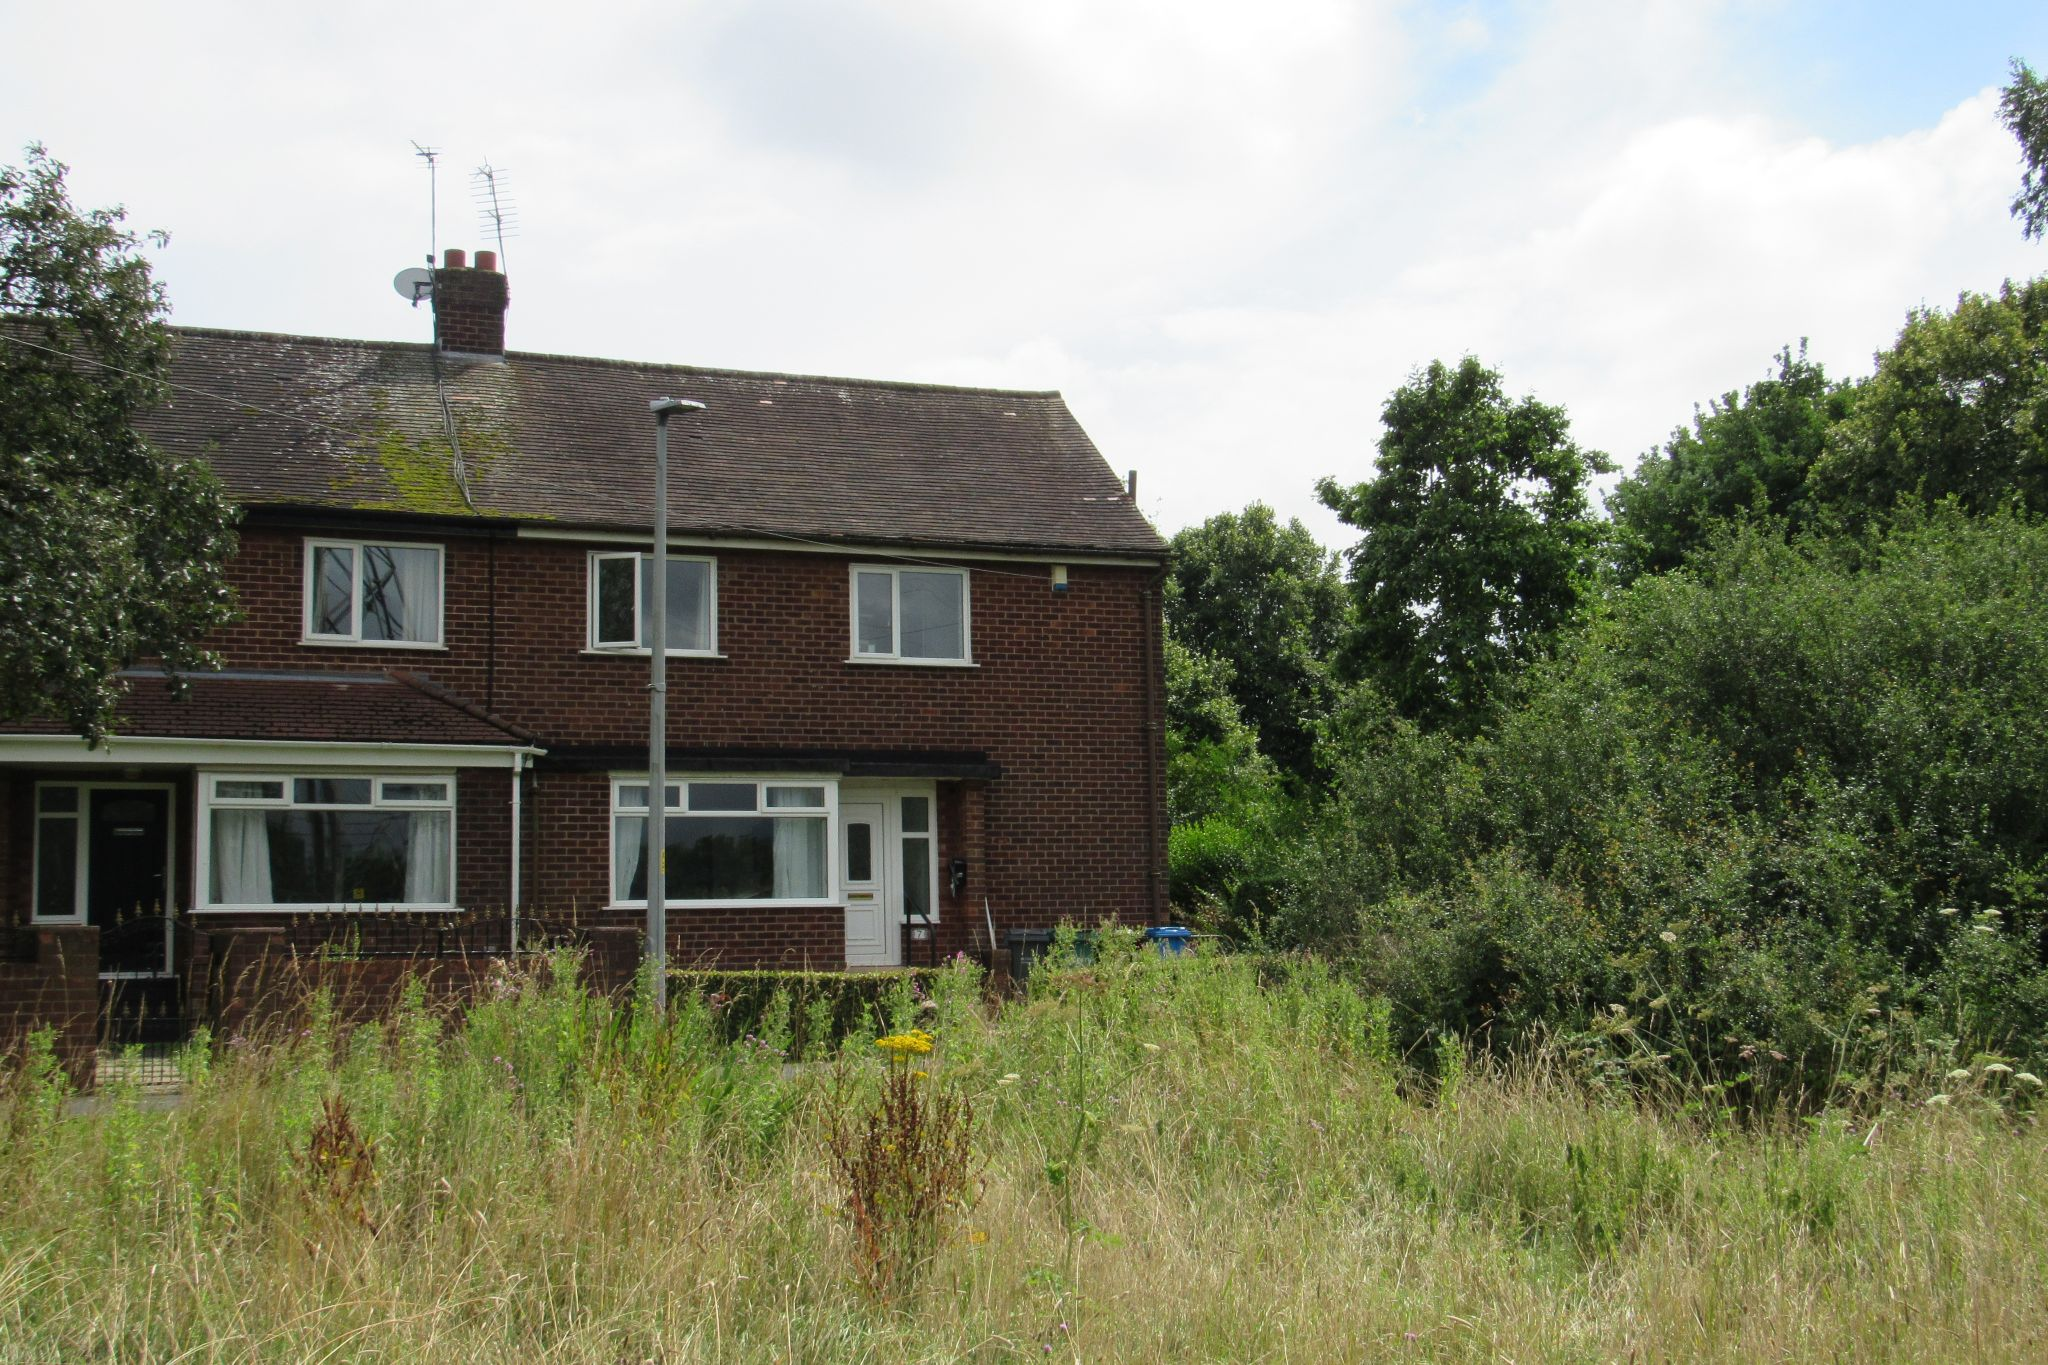 3 bedroom semi-detached house SSTC in Wythenshawe - Photograph 24.